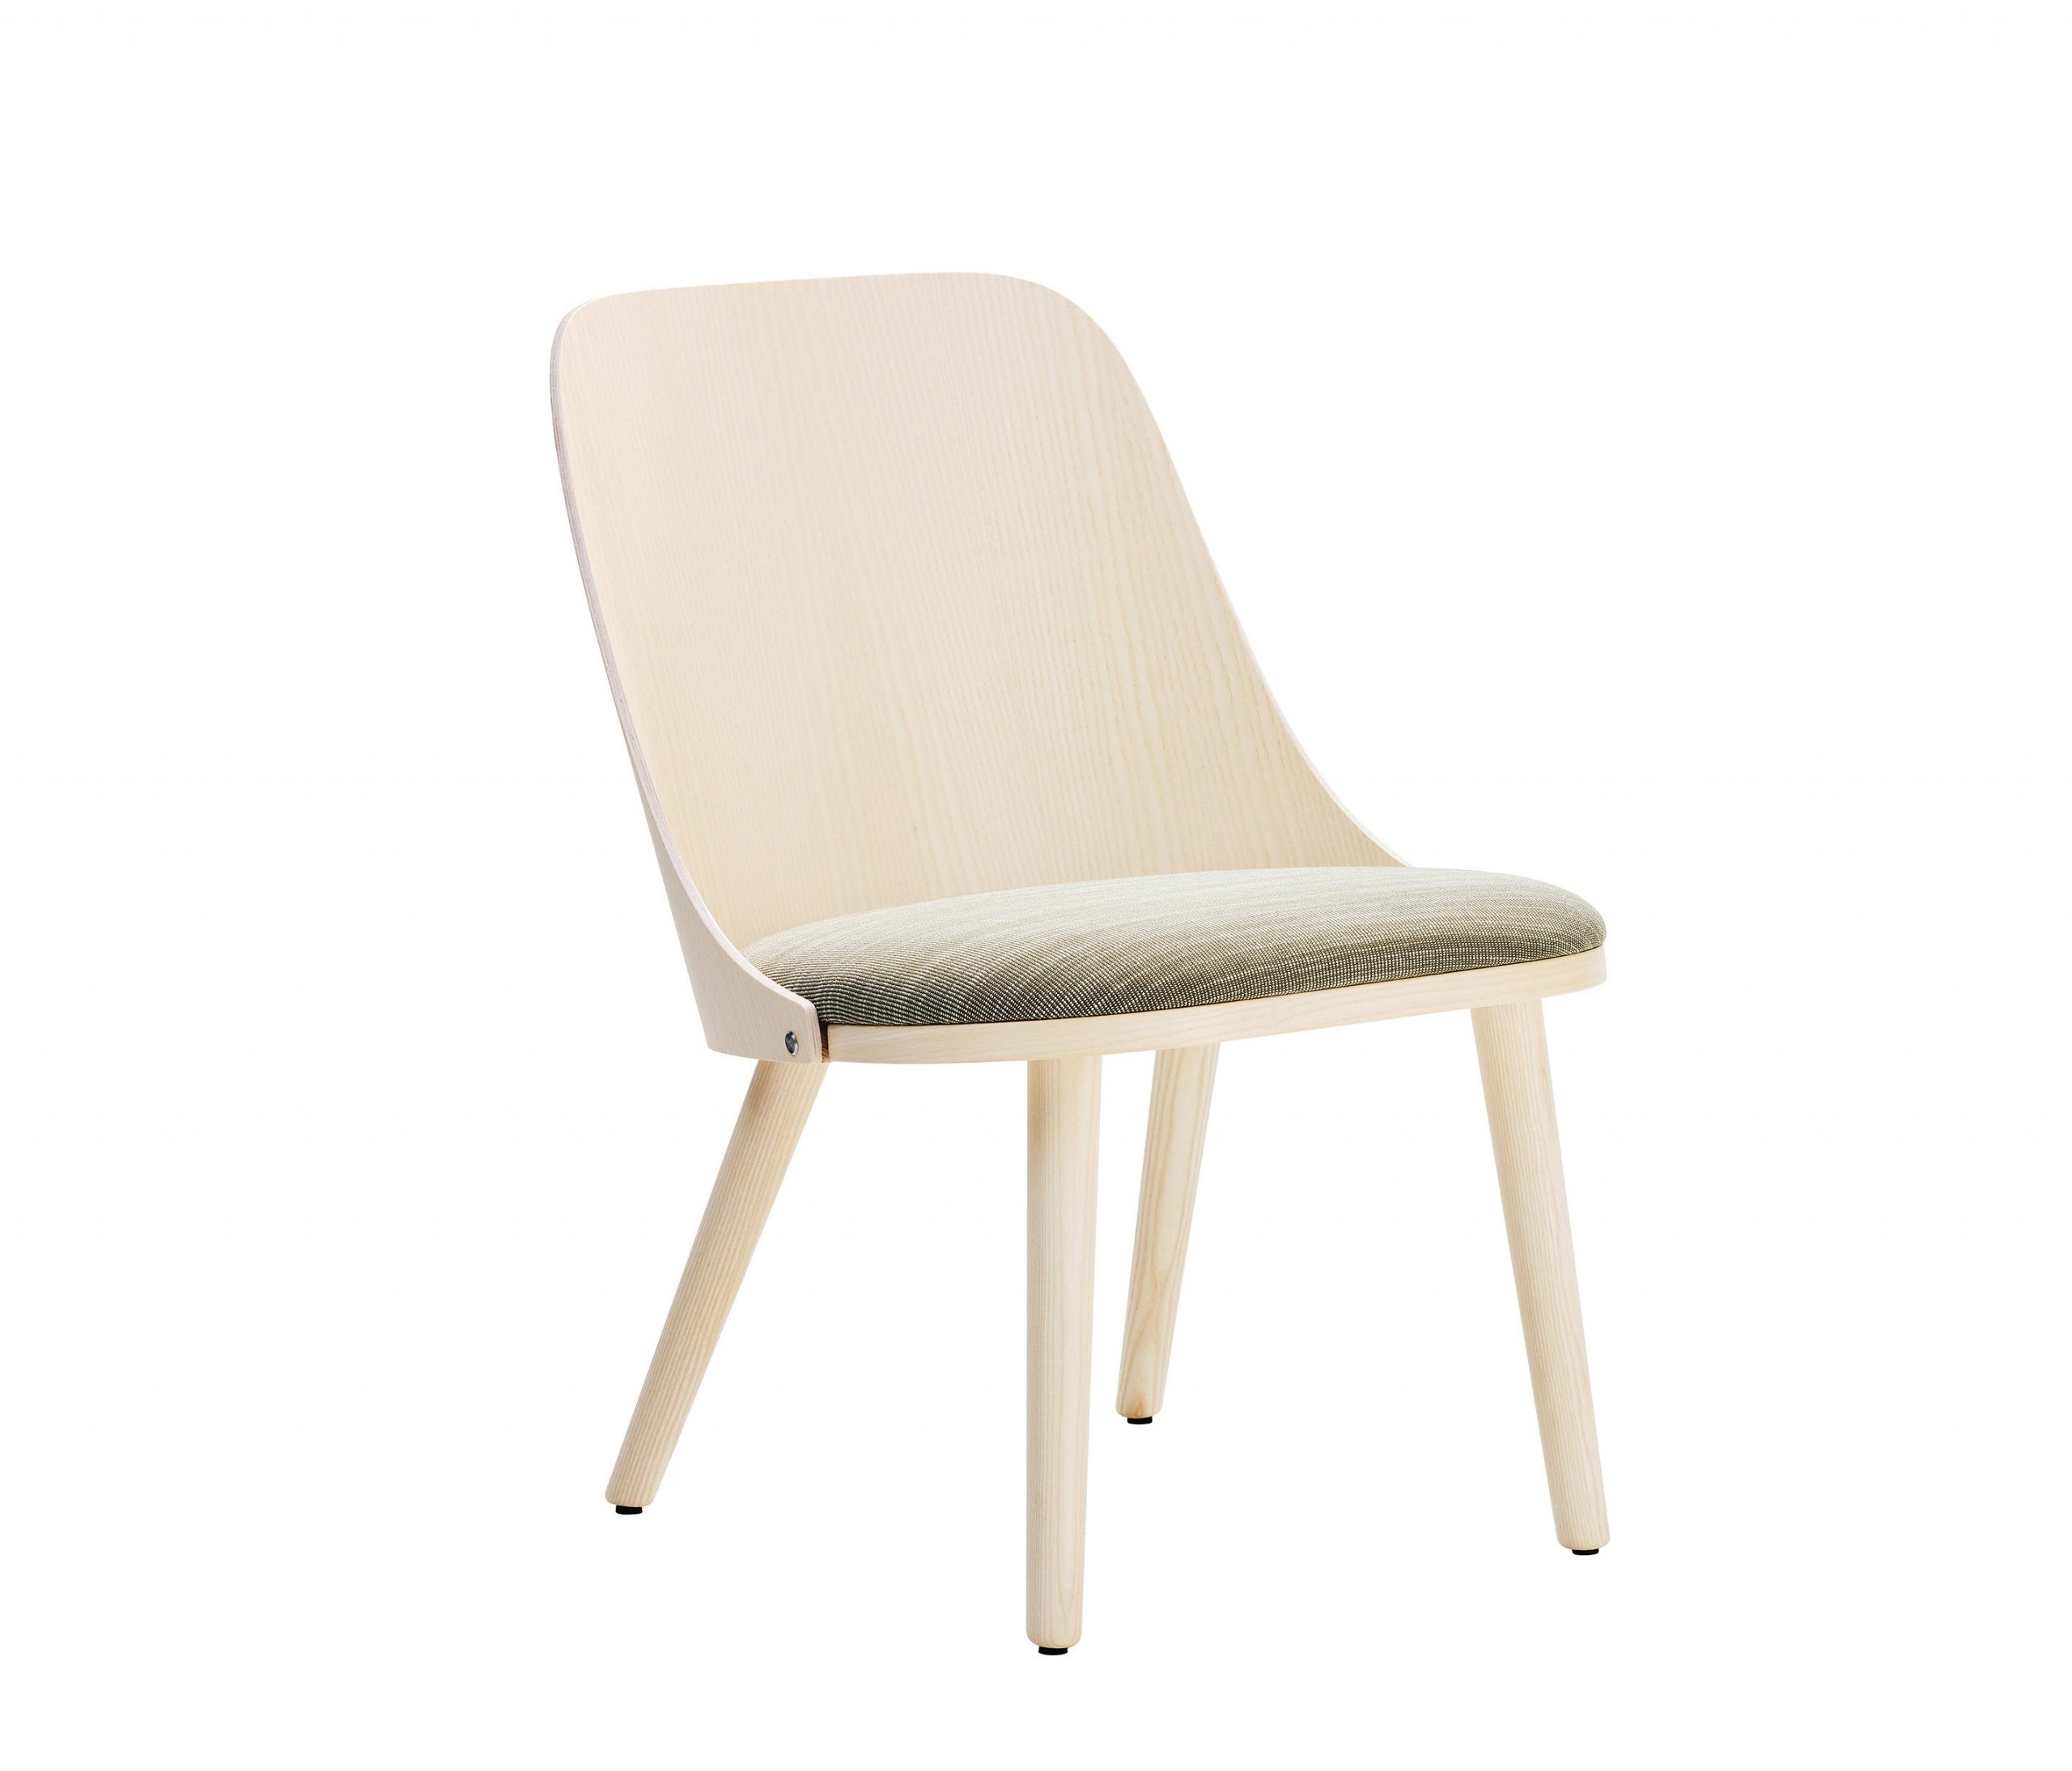 Sander Chair by Roger Persson for Karl Andersson & Söner